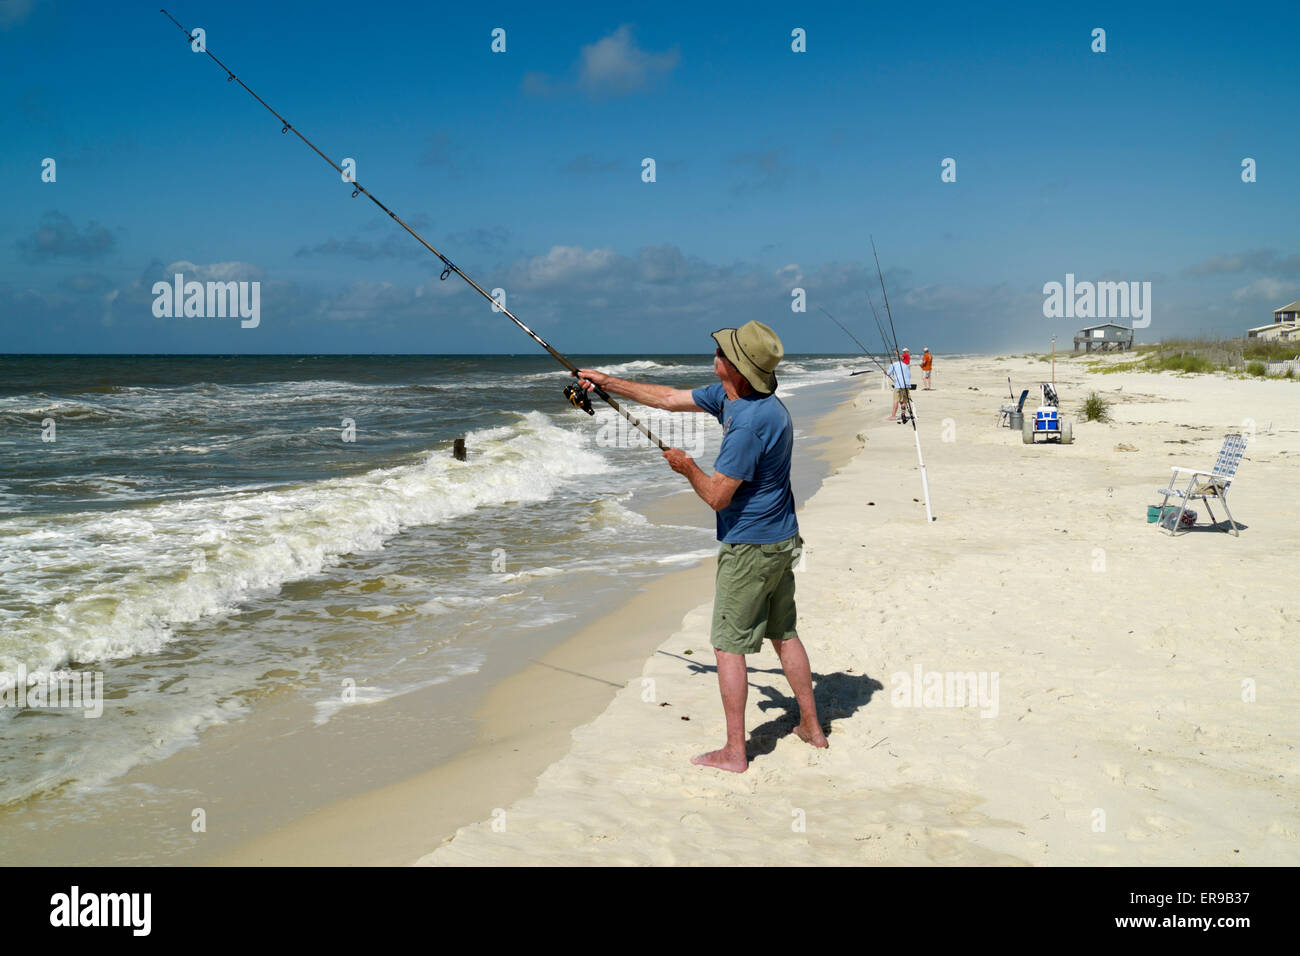 surf fishing in the gulf of mexico near gulf shores